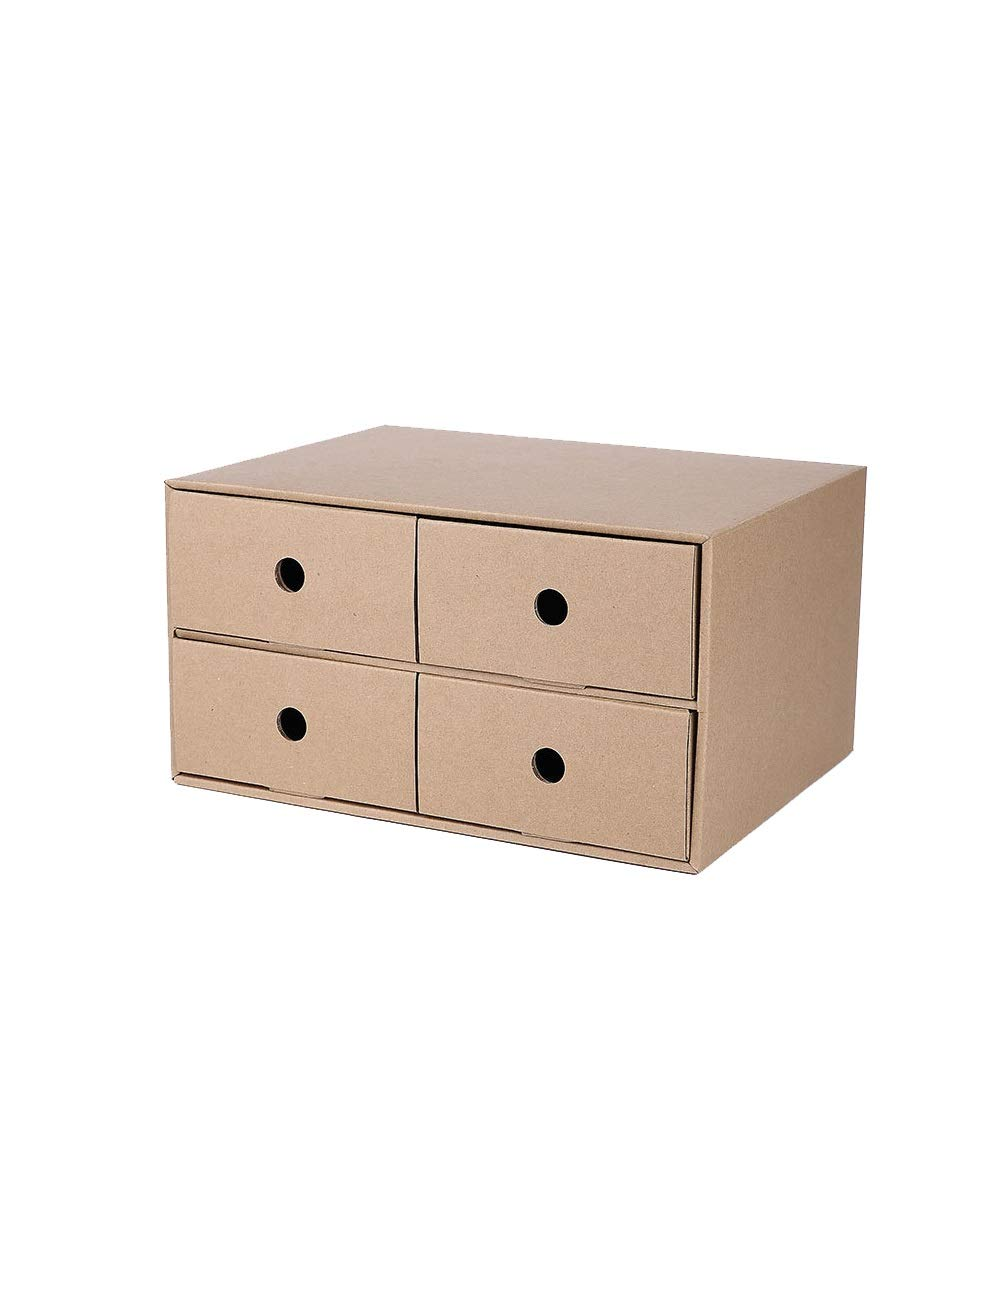 File Cabinets Office Organizer File Holder A4 Plastic Data Cabinet Locker Drawer Desktop Cabinet File Storage Cabinet Storage Box Home Office Furniture by File Cabinets